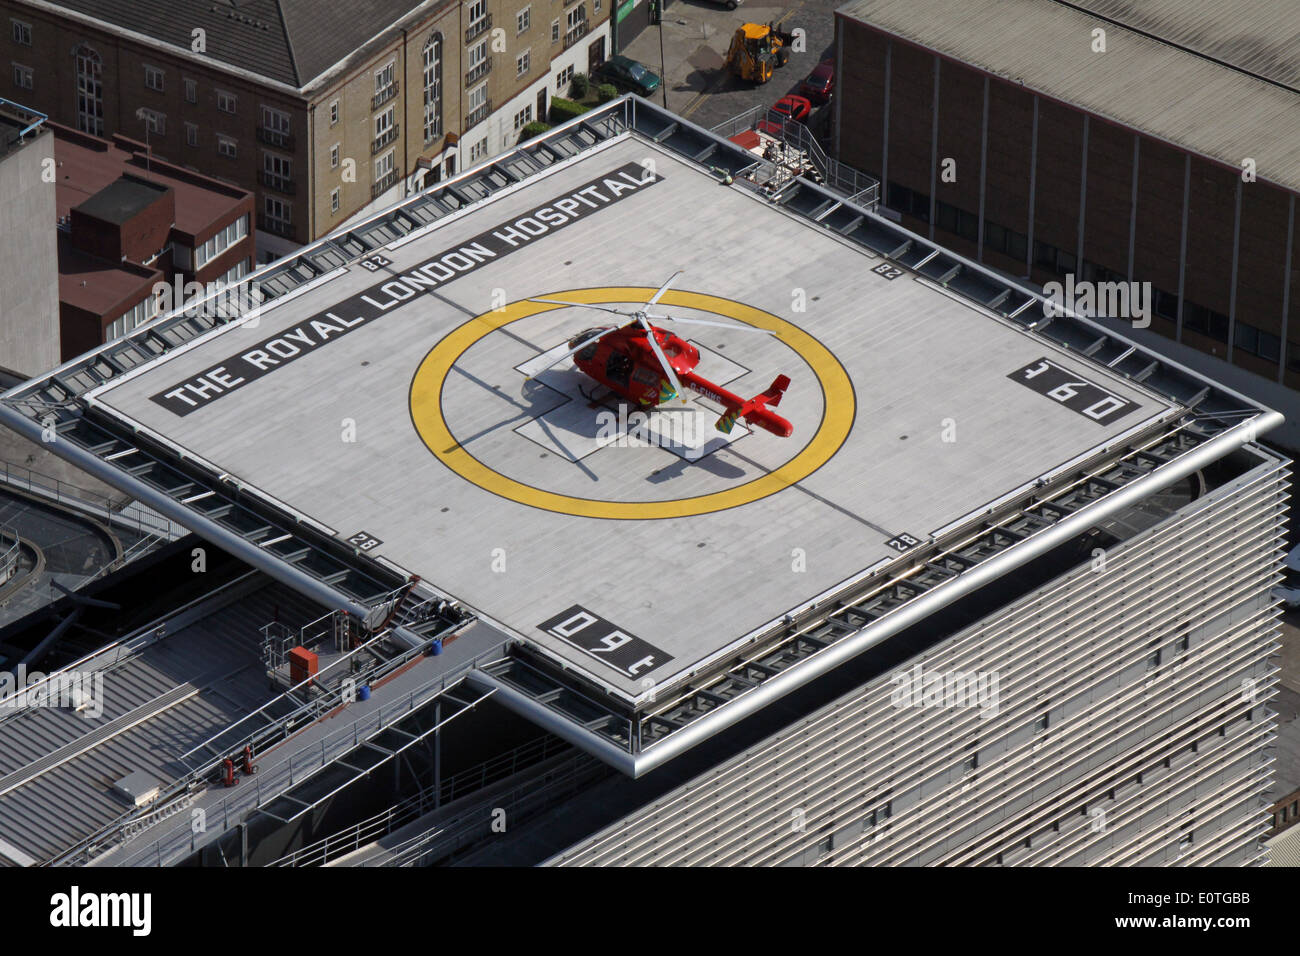 The emergency heli-pad, hospital helicopter landing pad, on the roof of The Royal London Hospital, London, UK - Stock Image